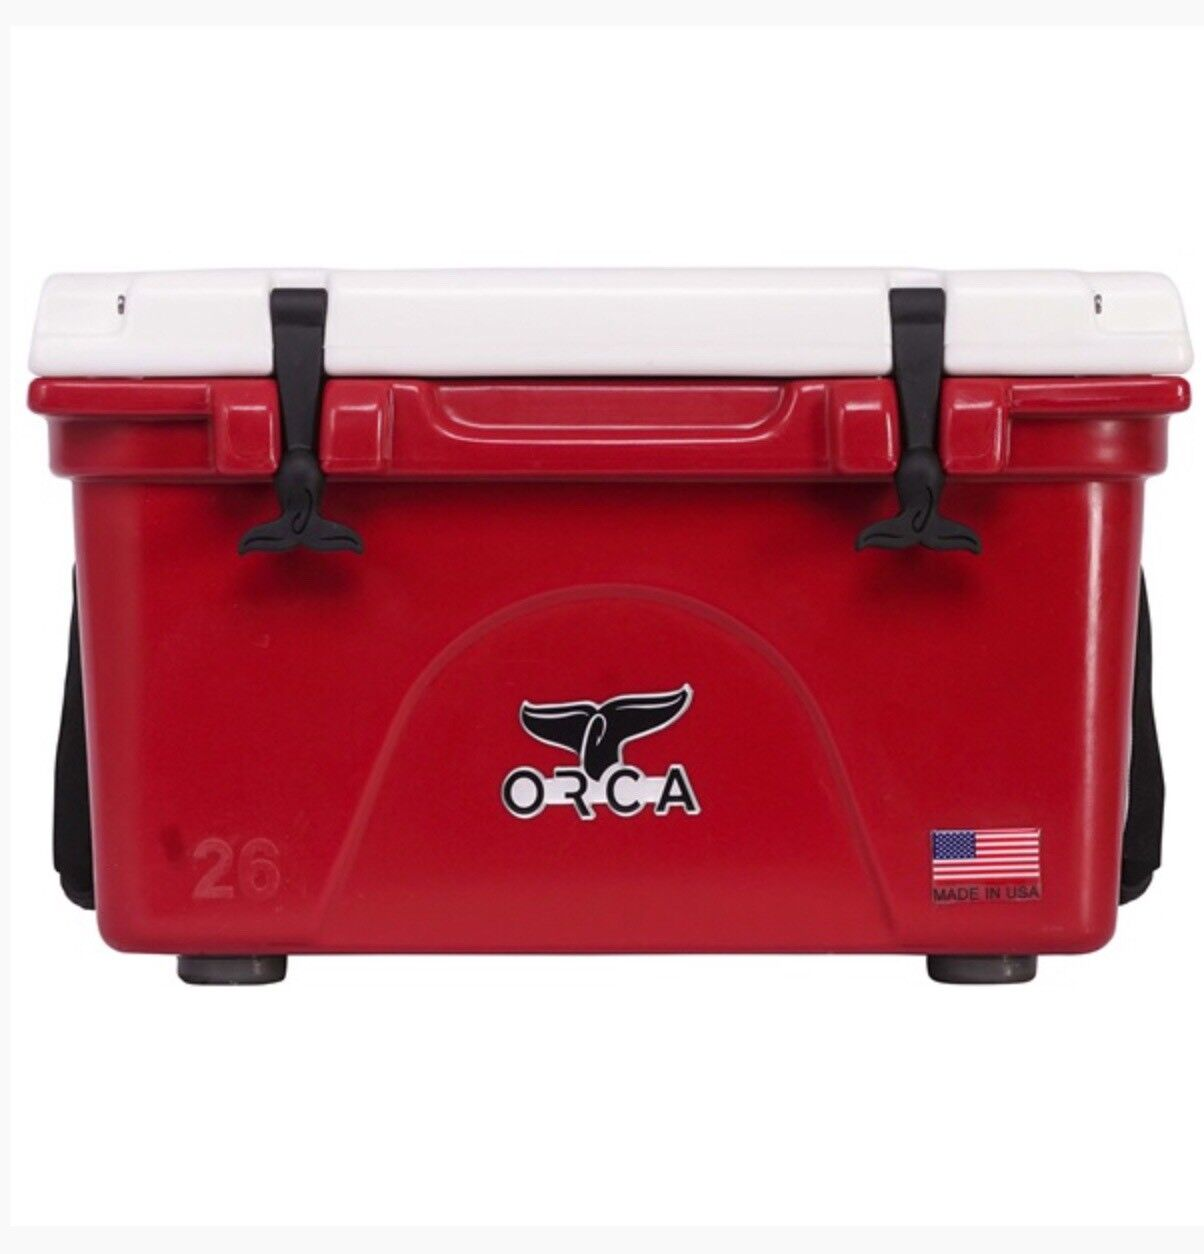 ORCCR/WH026  26QT CRIMSON AND Weiß COOLER WITH LIFETIME WARRANTY